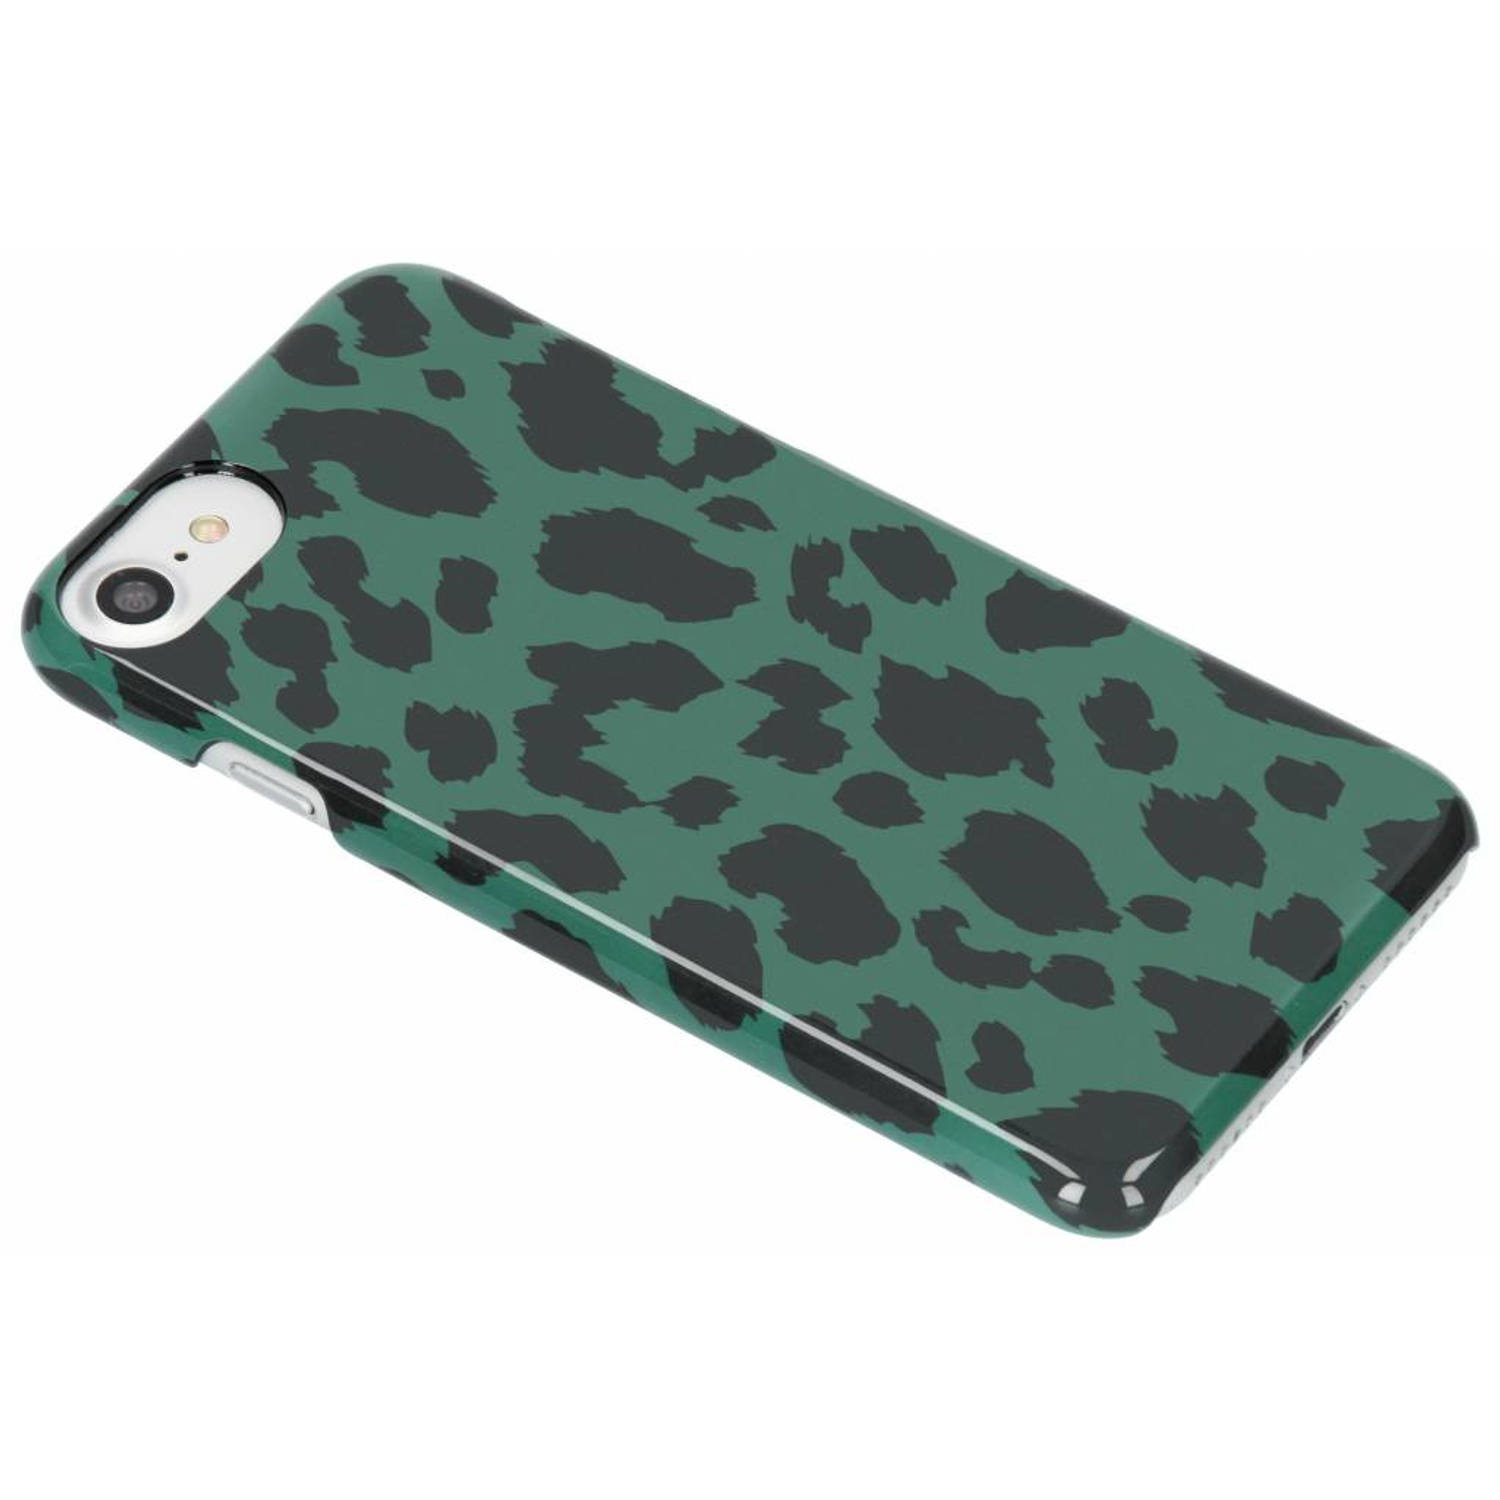 Panter Passion Hard Case voor de iPhone 8 / 7 / 6 / 6s